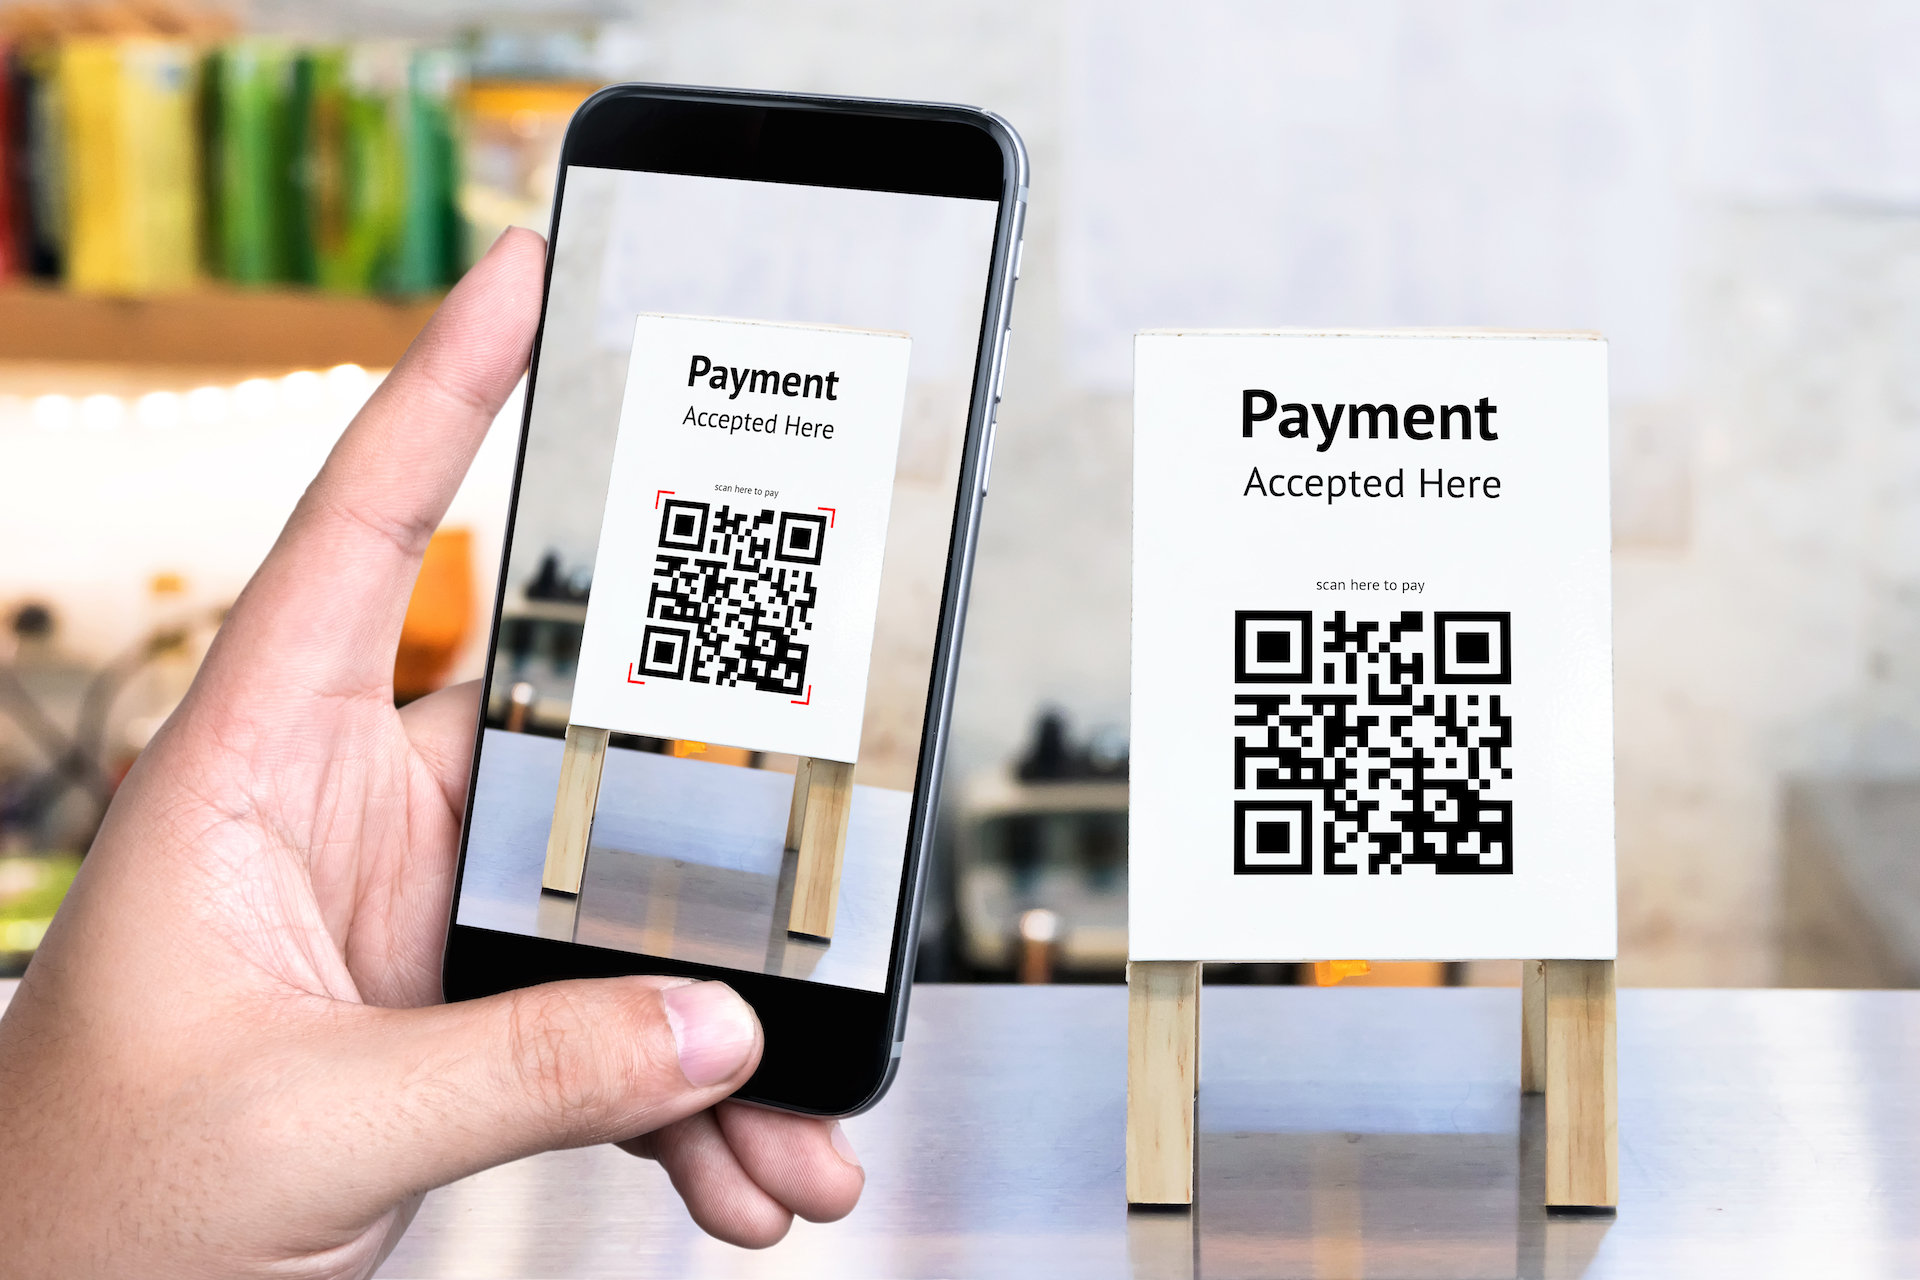 qr-code-scanning-as-a-payment-method